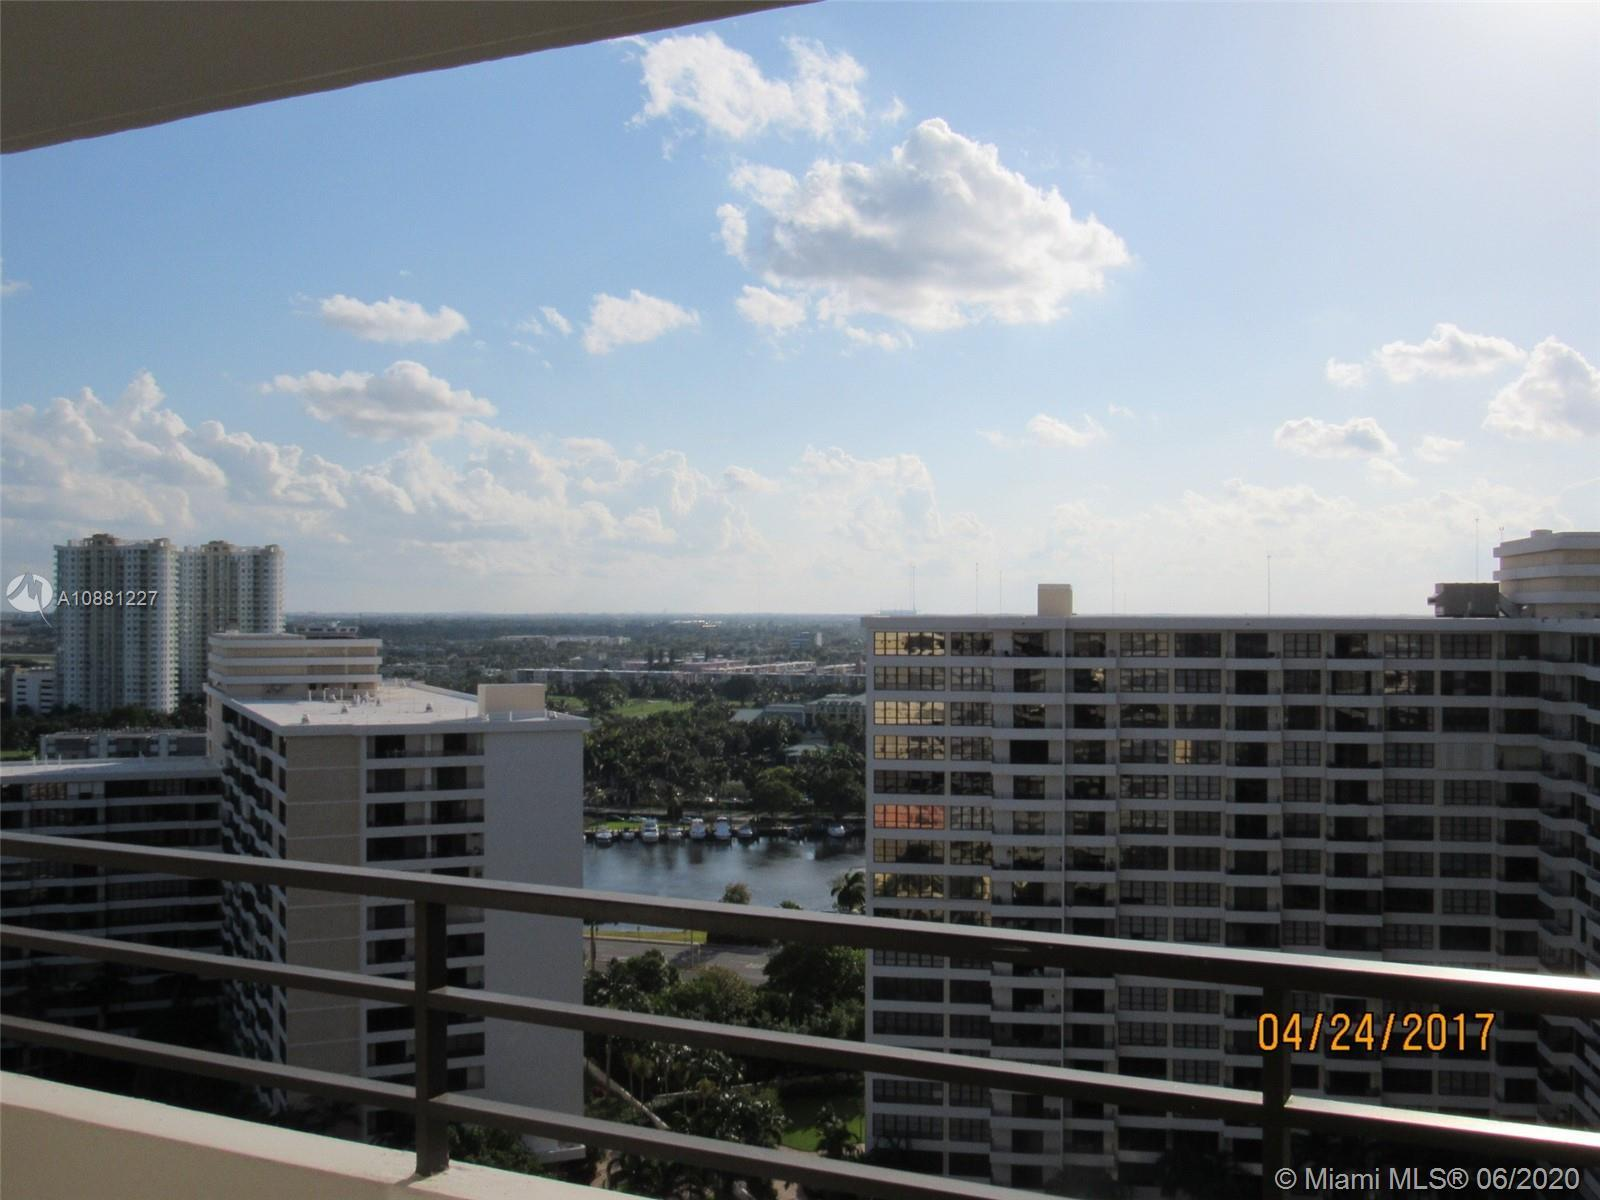 Remodeled, large 2 bedroom / 2 bathroom condo, great views. Available unfurnished or fully furnished